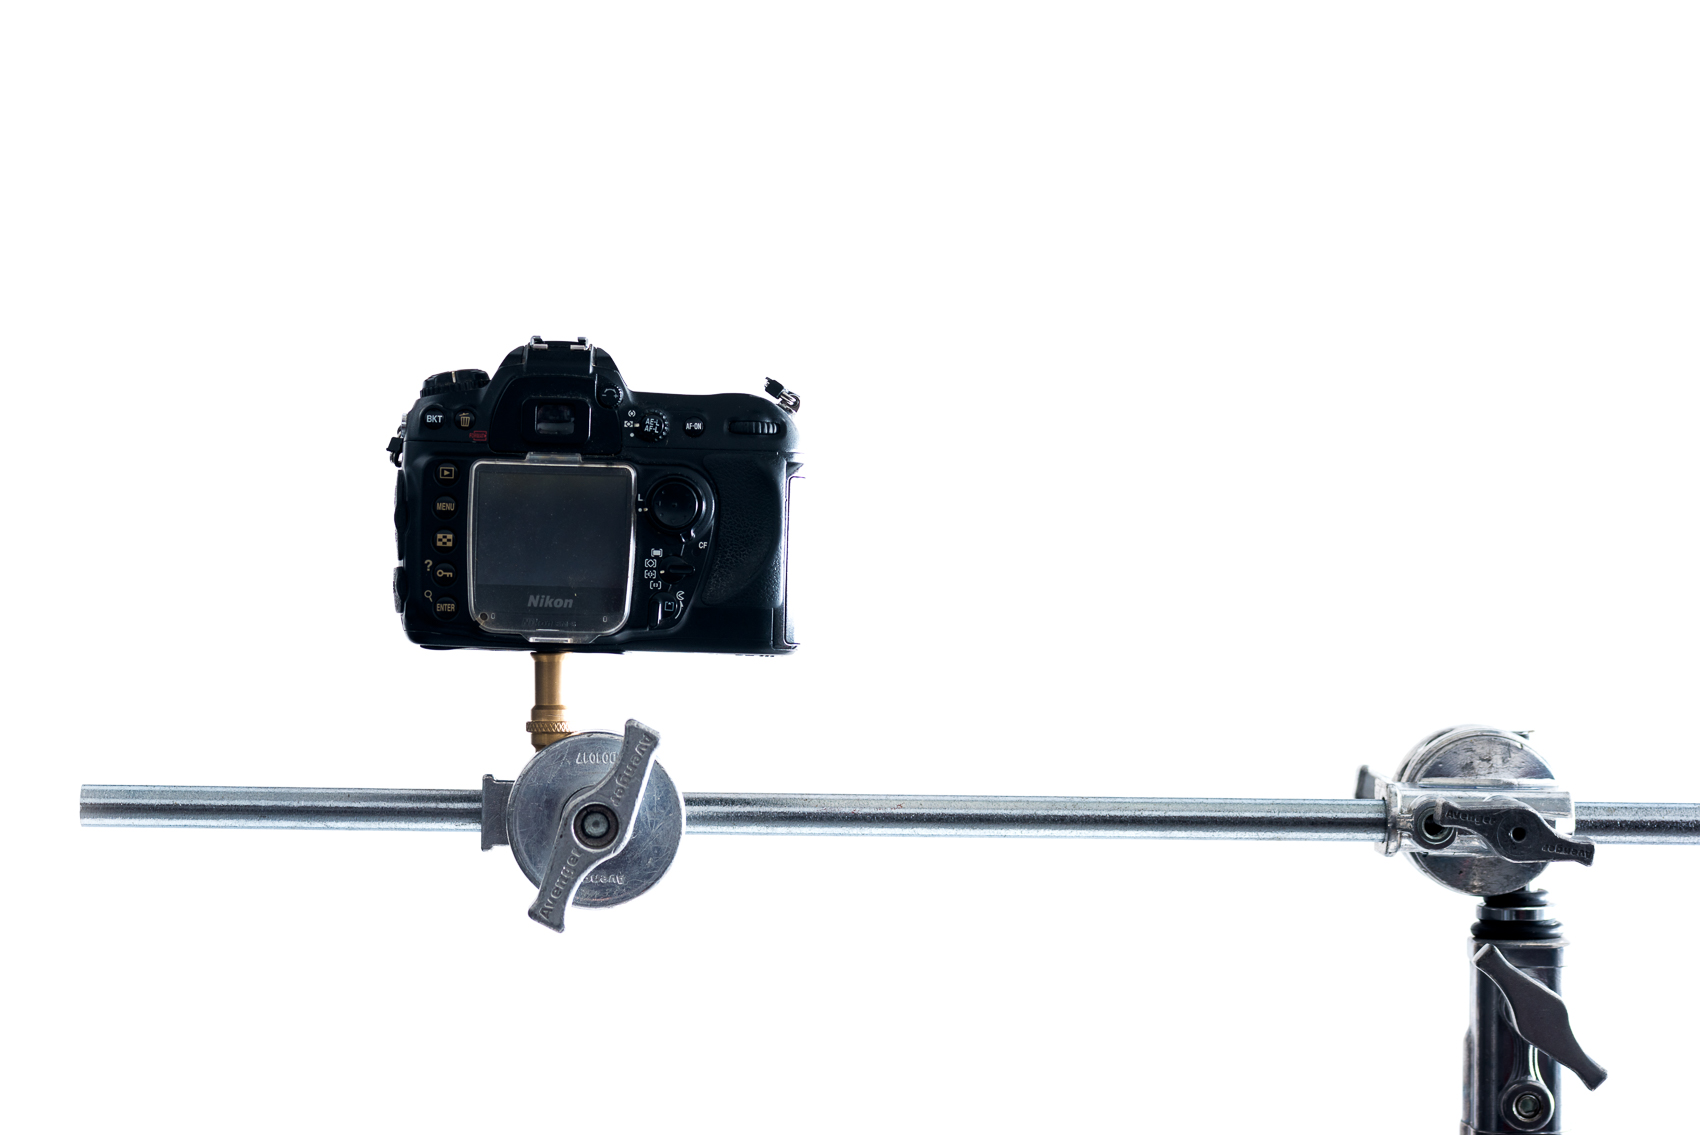 camera-mounted-on-c-stand